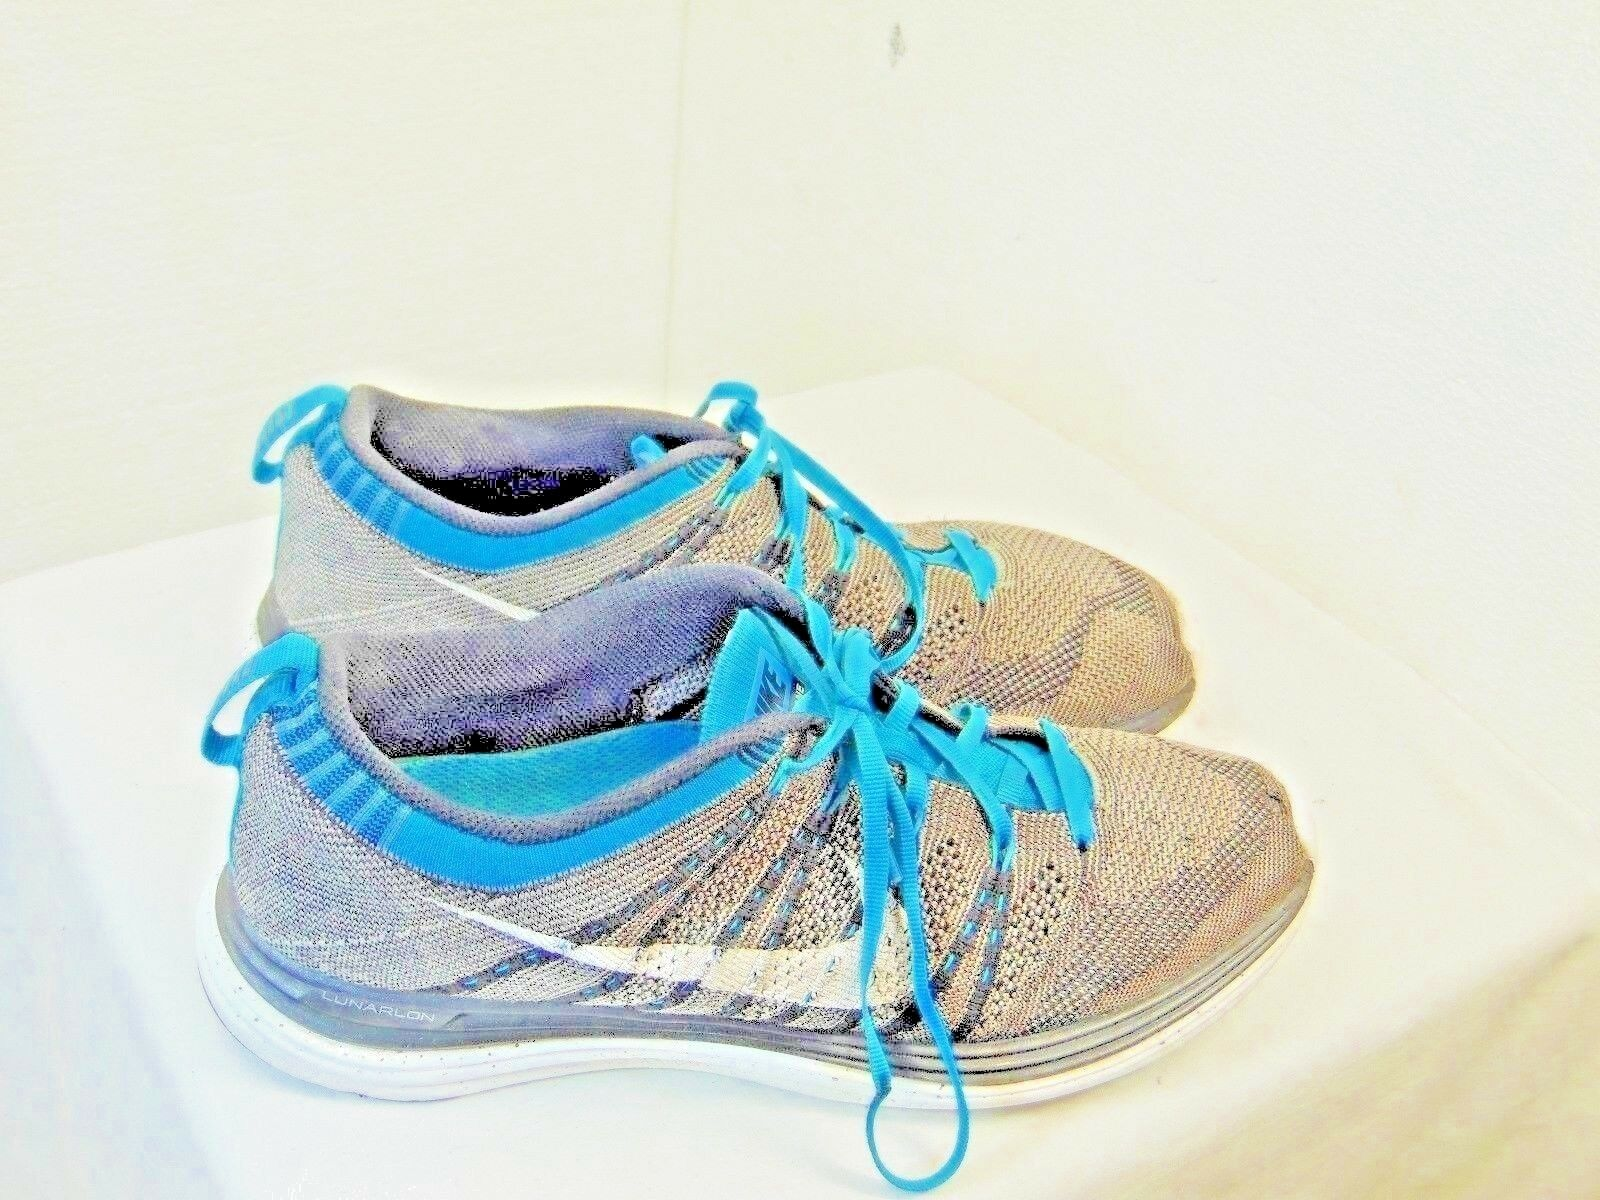 MENS ATHLETIC SHOES NIKE BRAND SIZE 9 GRAY AND BLUE AIRFLOW FABRIC   ZC6  Cheap and beautiful fashion